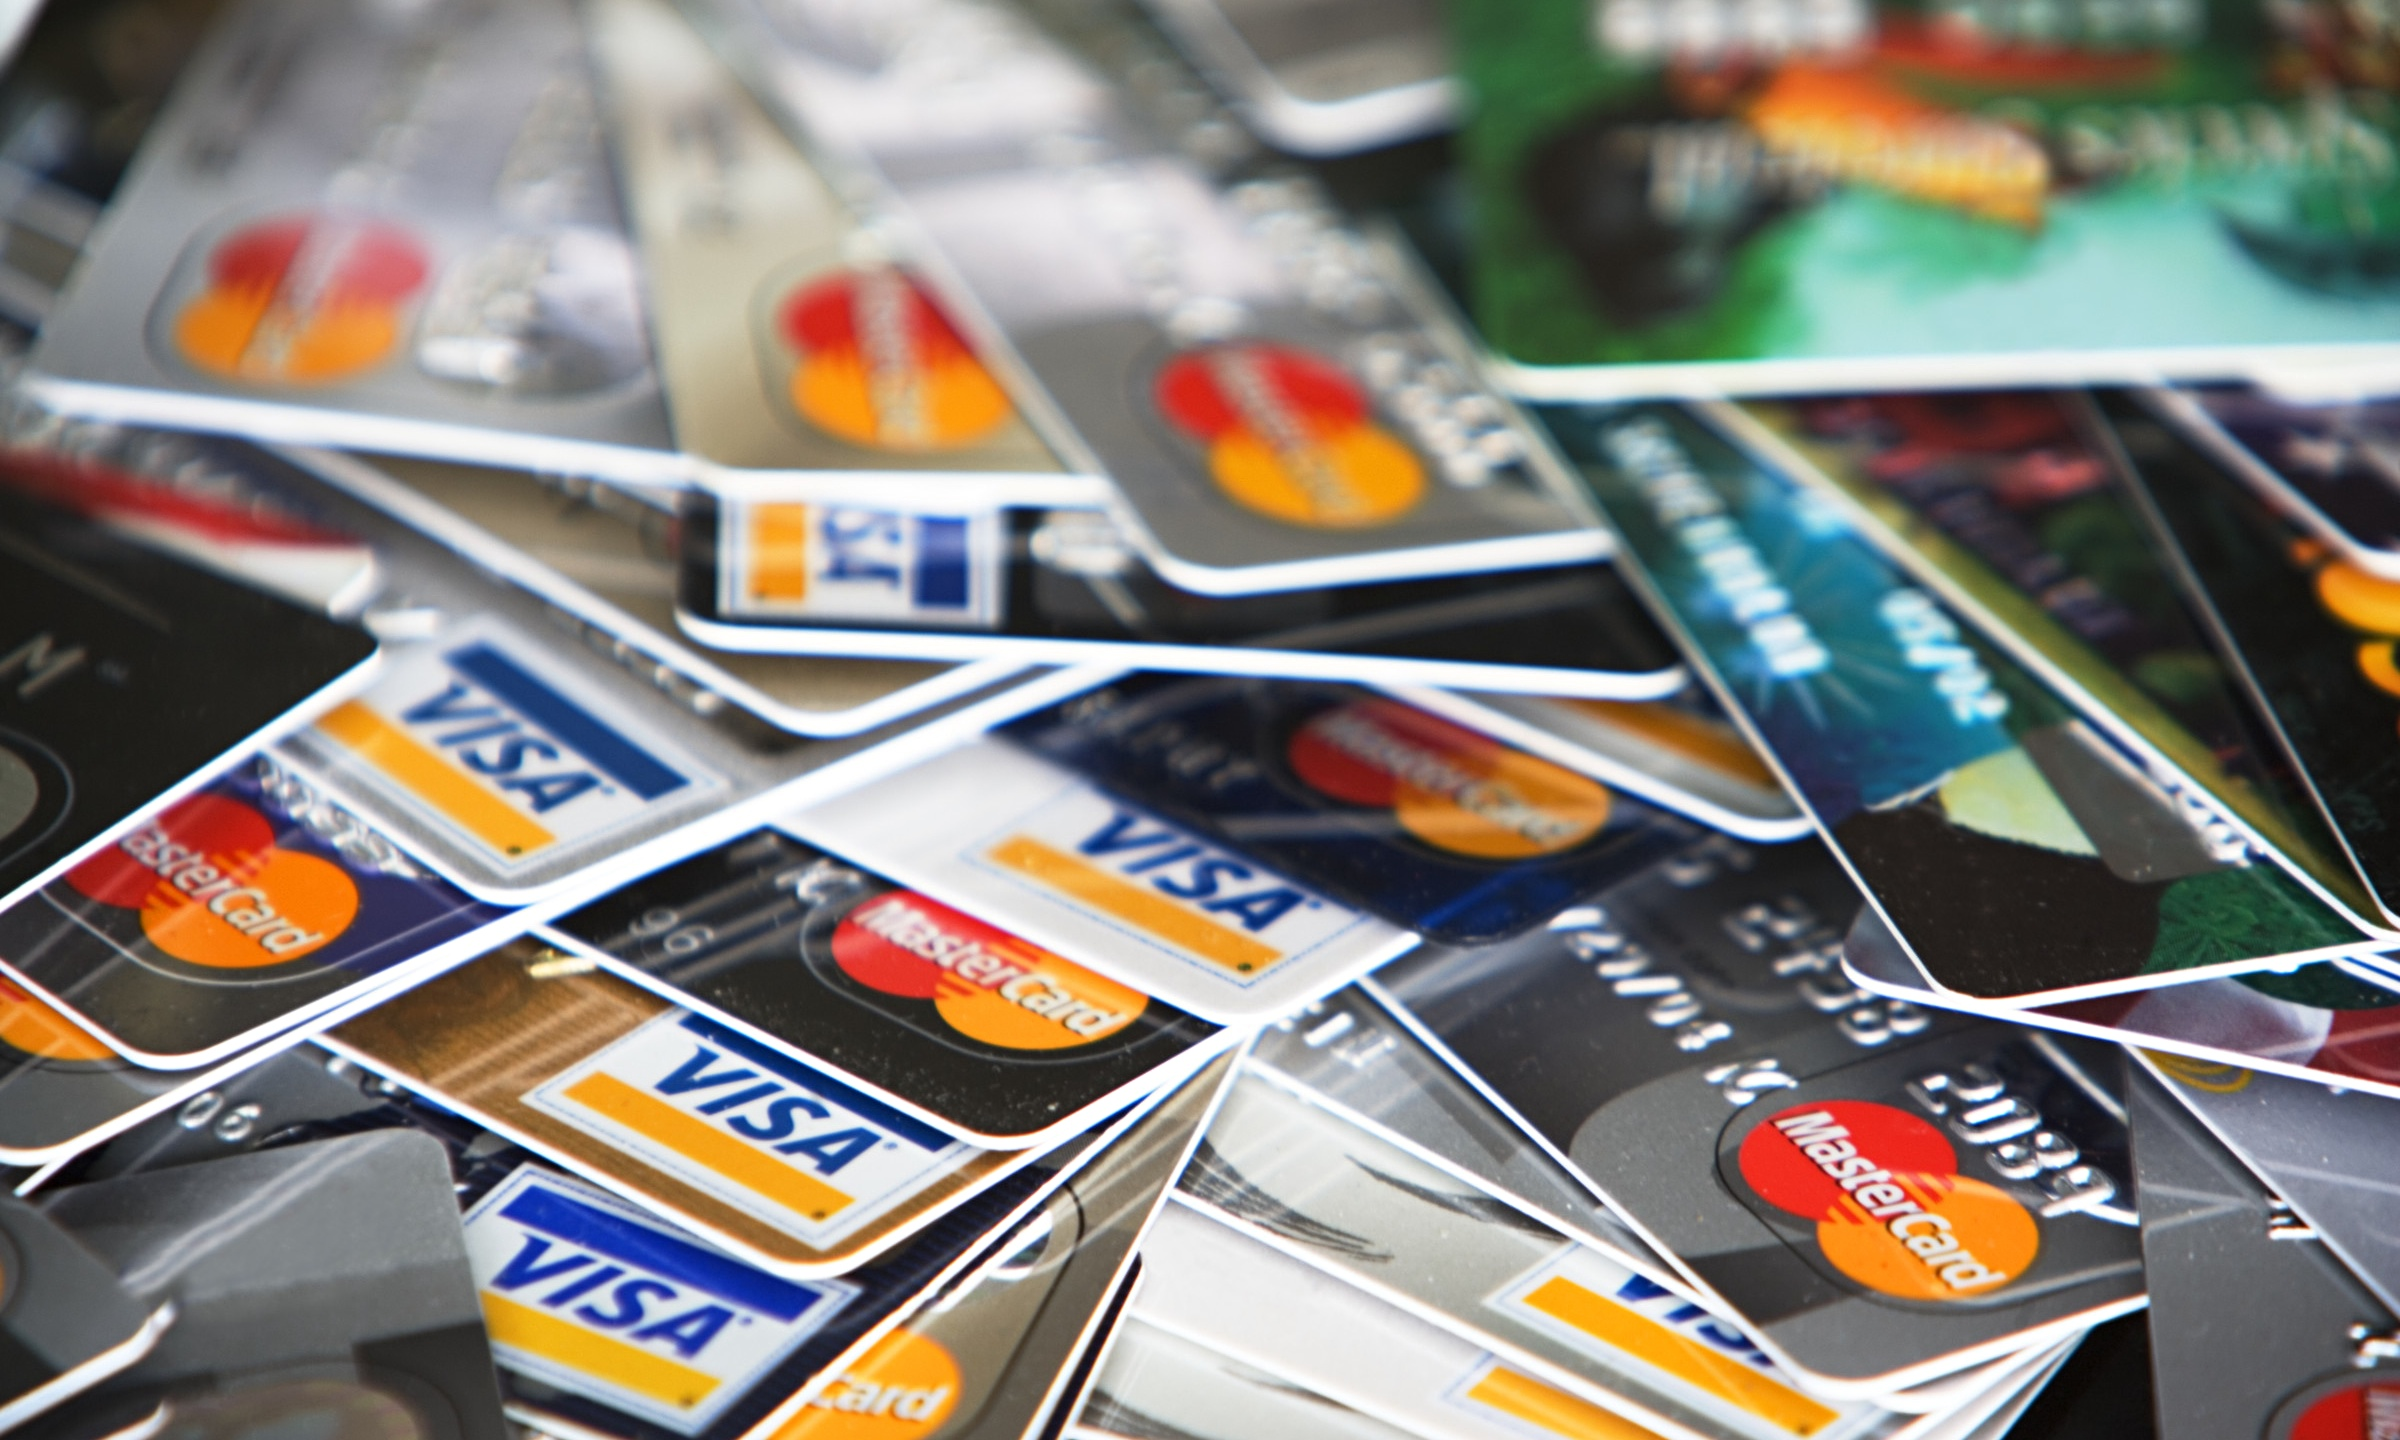 How to Enjoy your Credit Card without Going into Debt